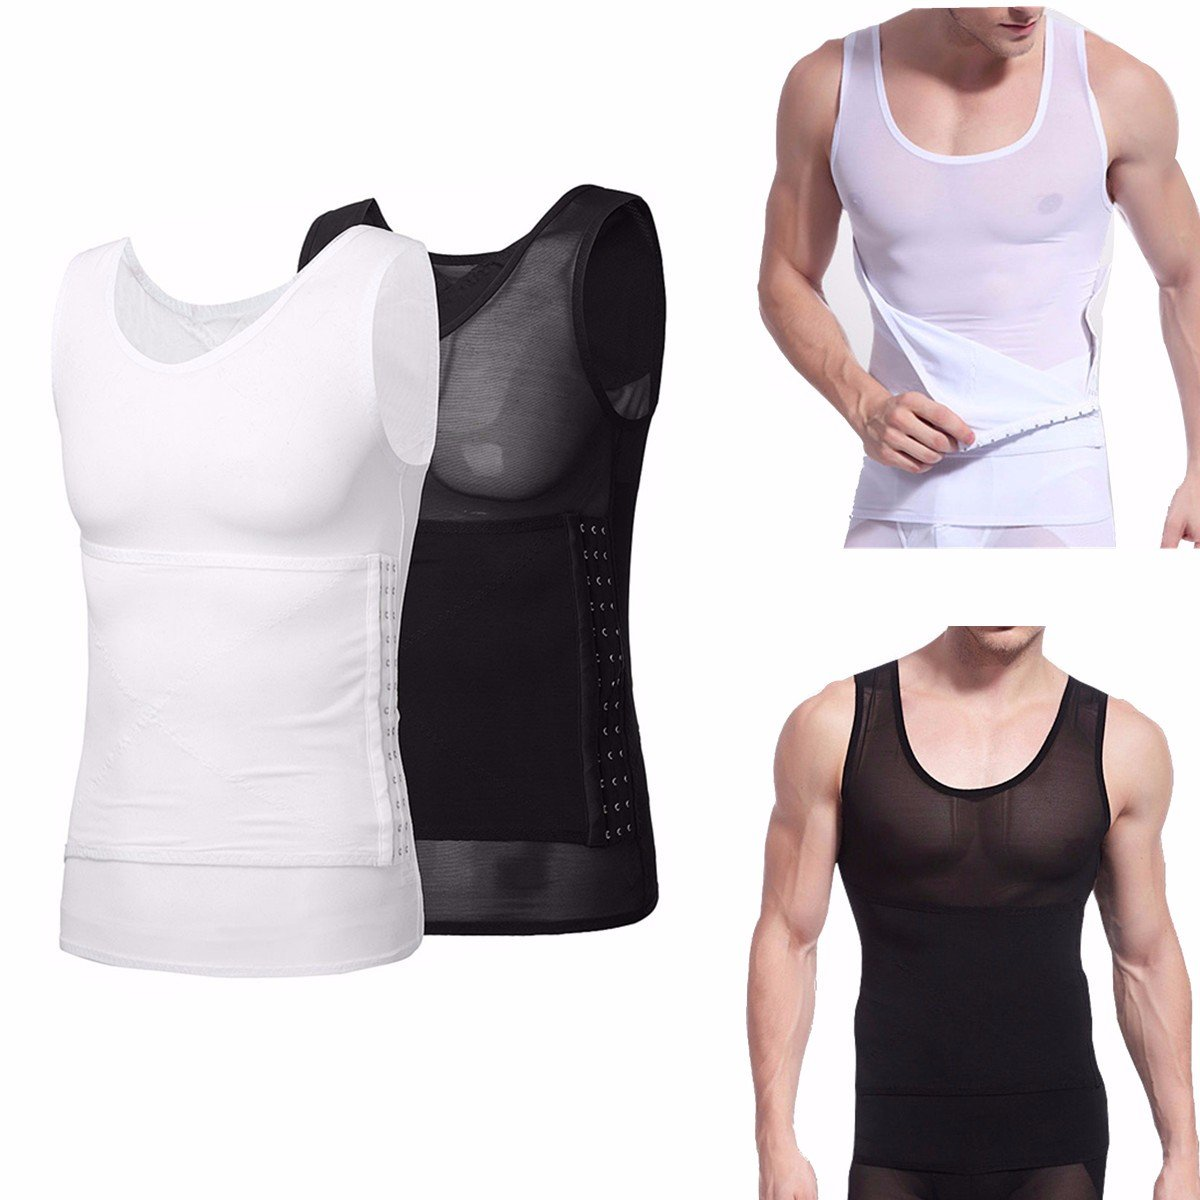 Men Body Shaping Waist Slimming Vest Belly Tight Corset Breasted Adjustment Shaper